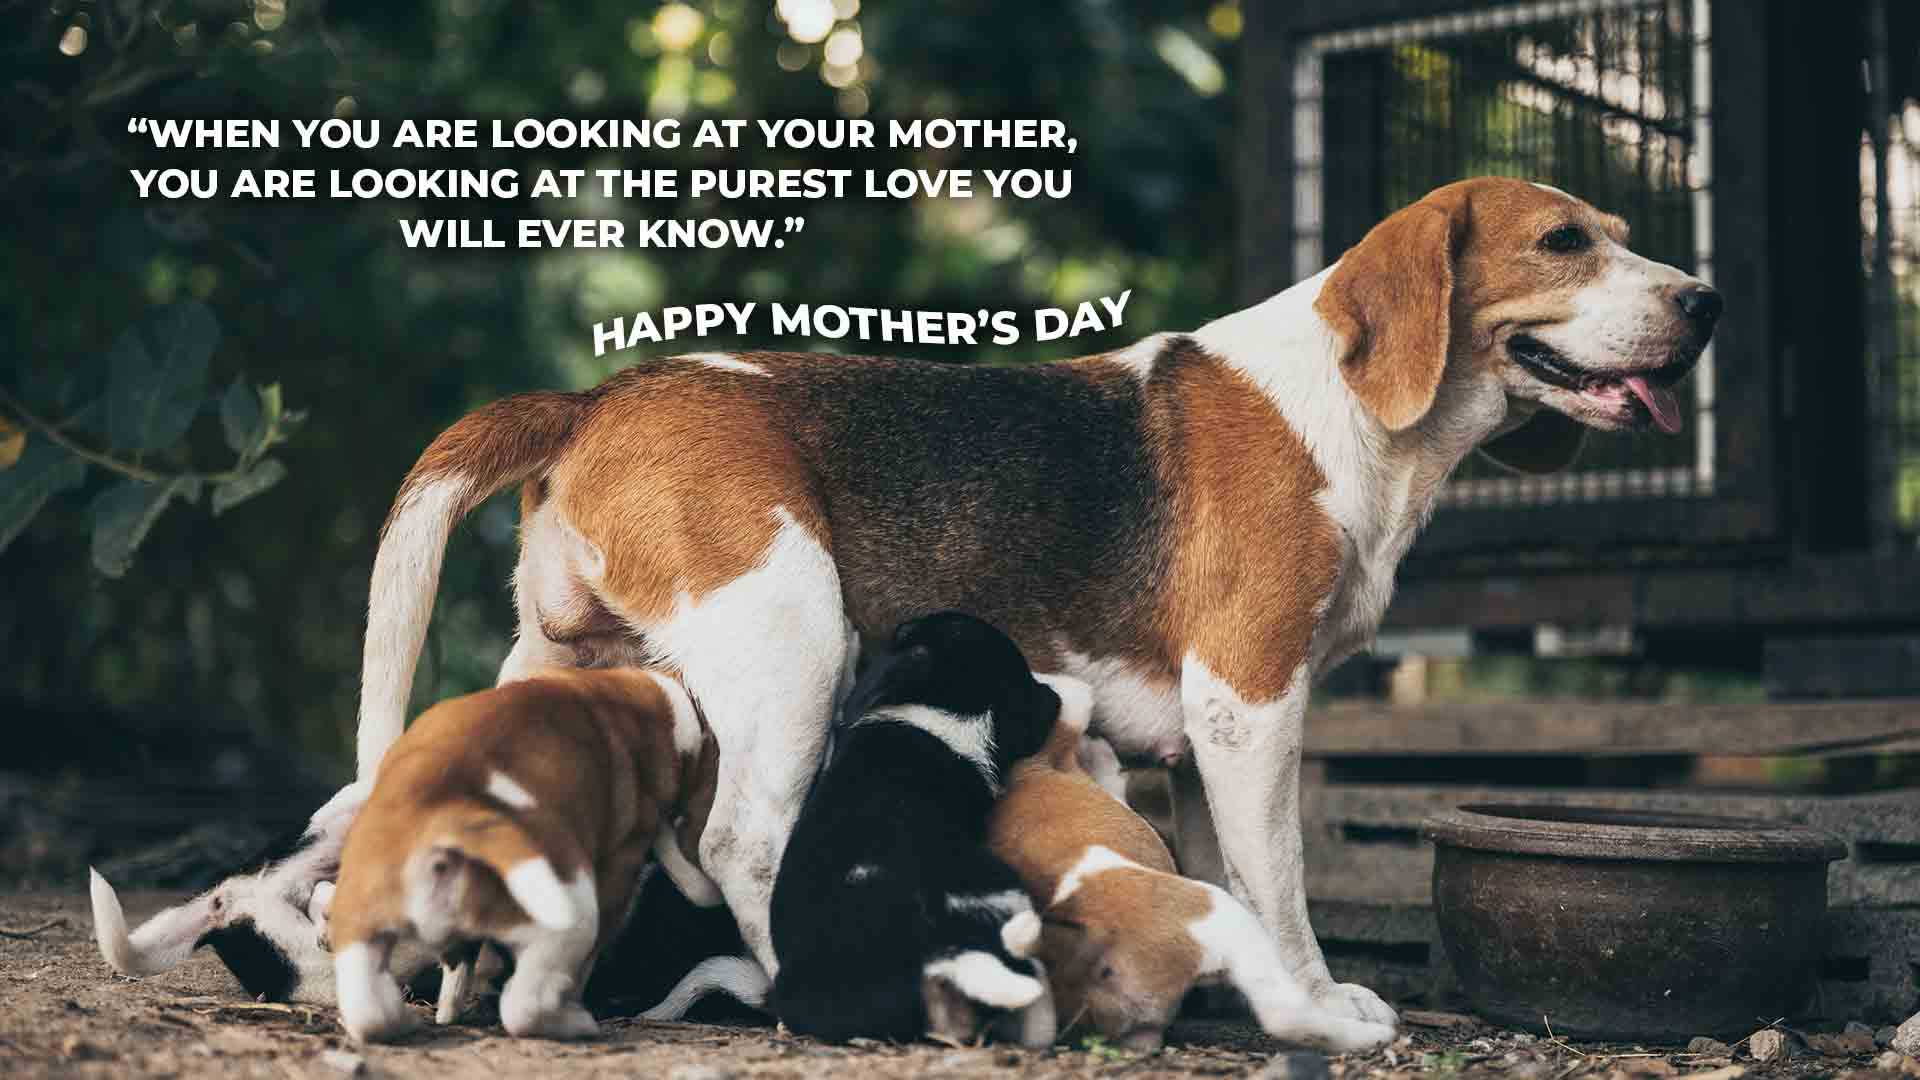 """When you are looking at your mother, you are looking at the purest love you will ever know."""